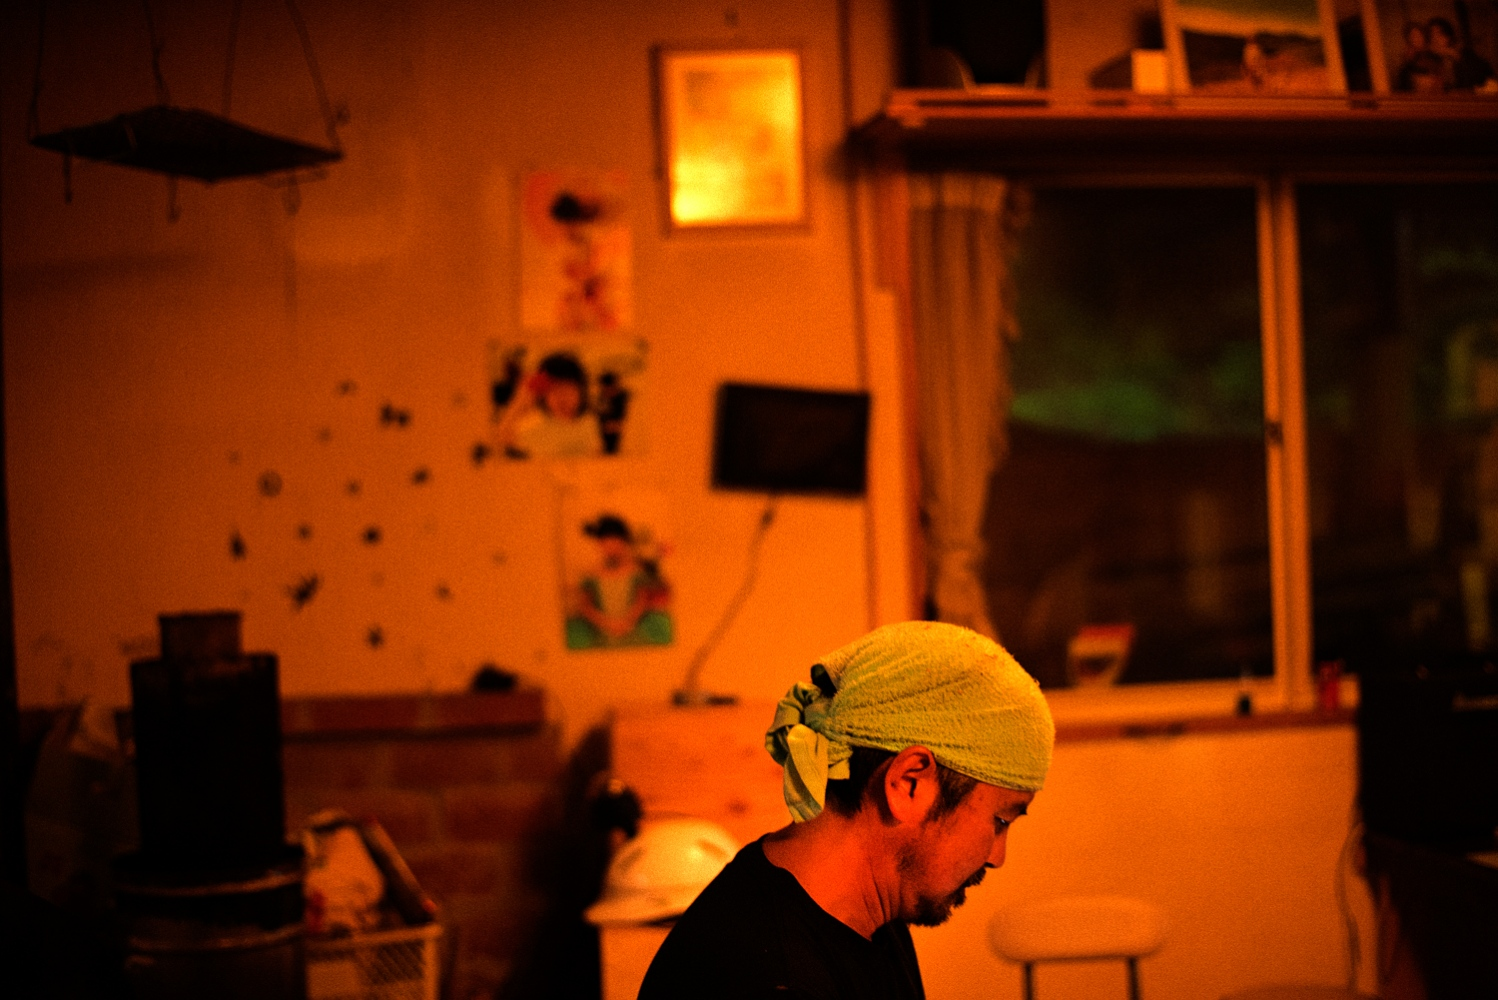 Norio Kimura(52) at his current home in Hakuba, a town about 400km from his former home in Okuma. Pictures of his deceased daughter Yuna Kimura, then age 6, can be seen in the back.